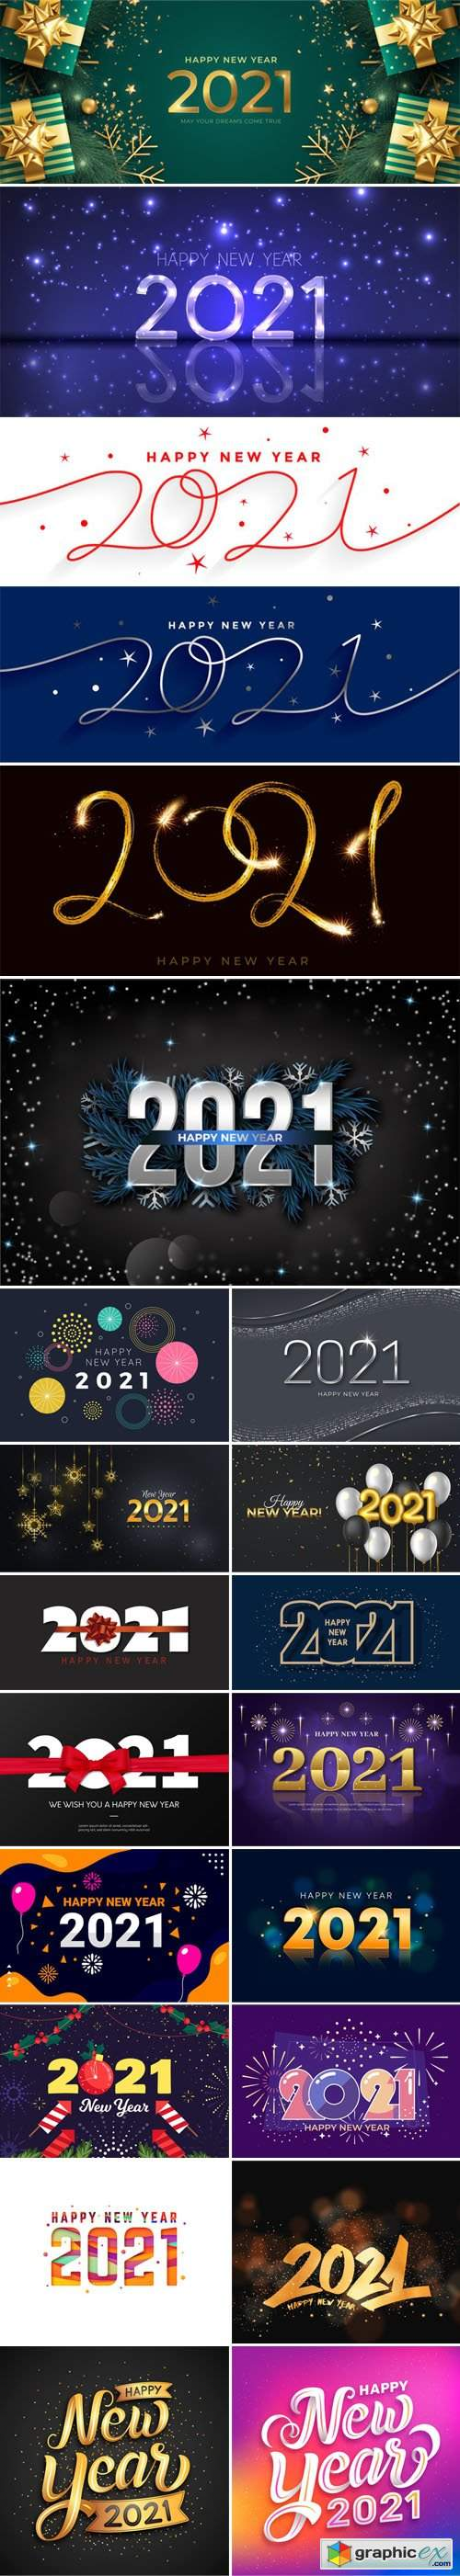 23 Happy New Year 2021 Backgrounds & Lettering Templates in Vector